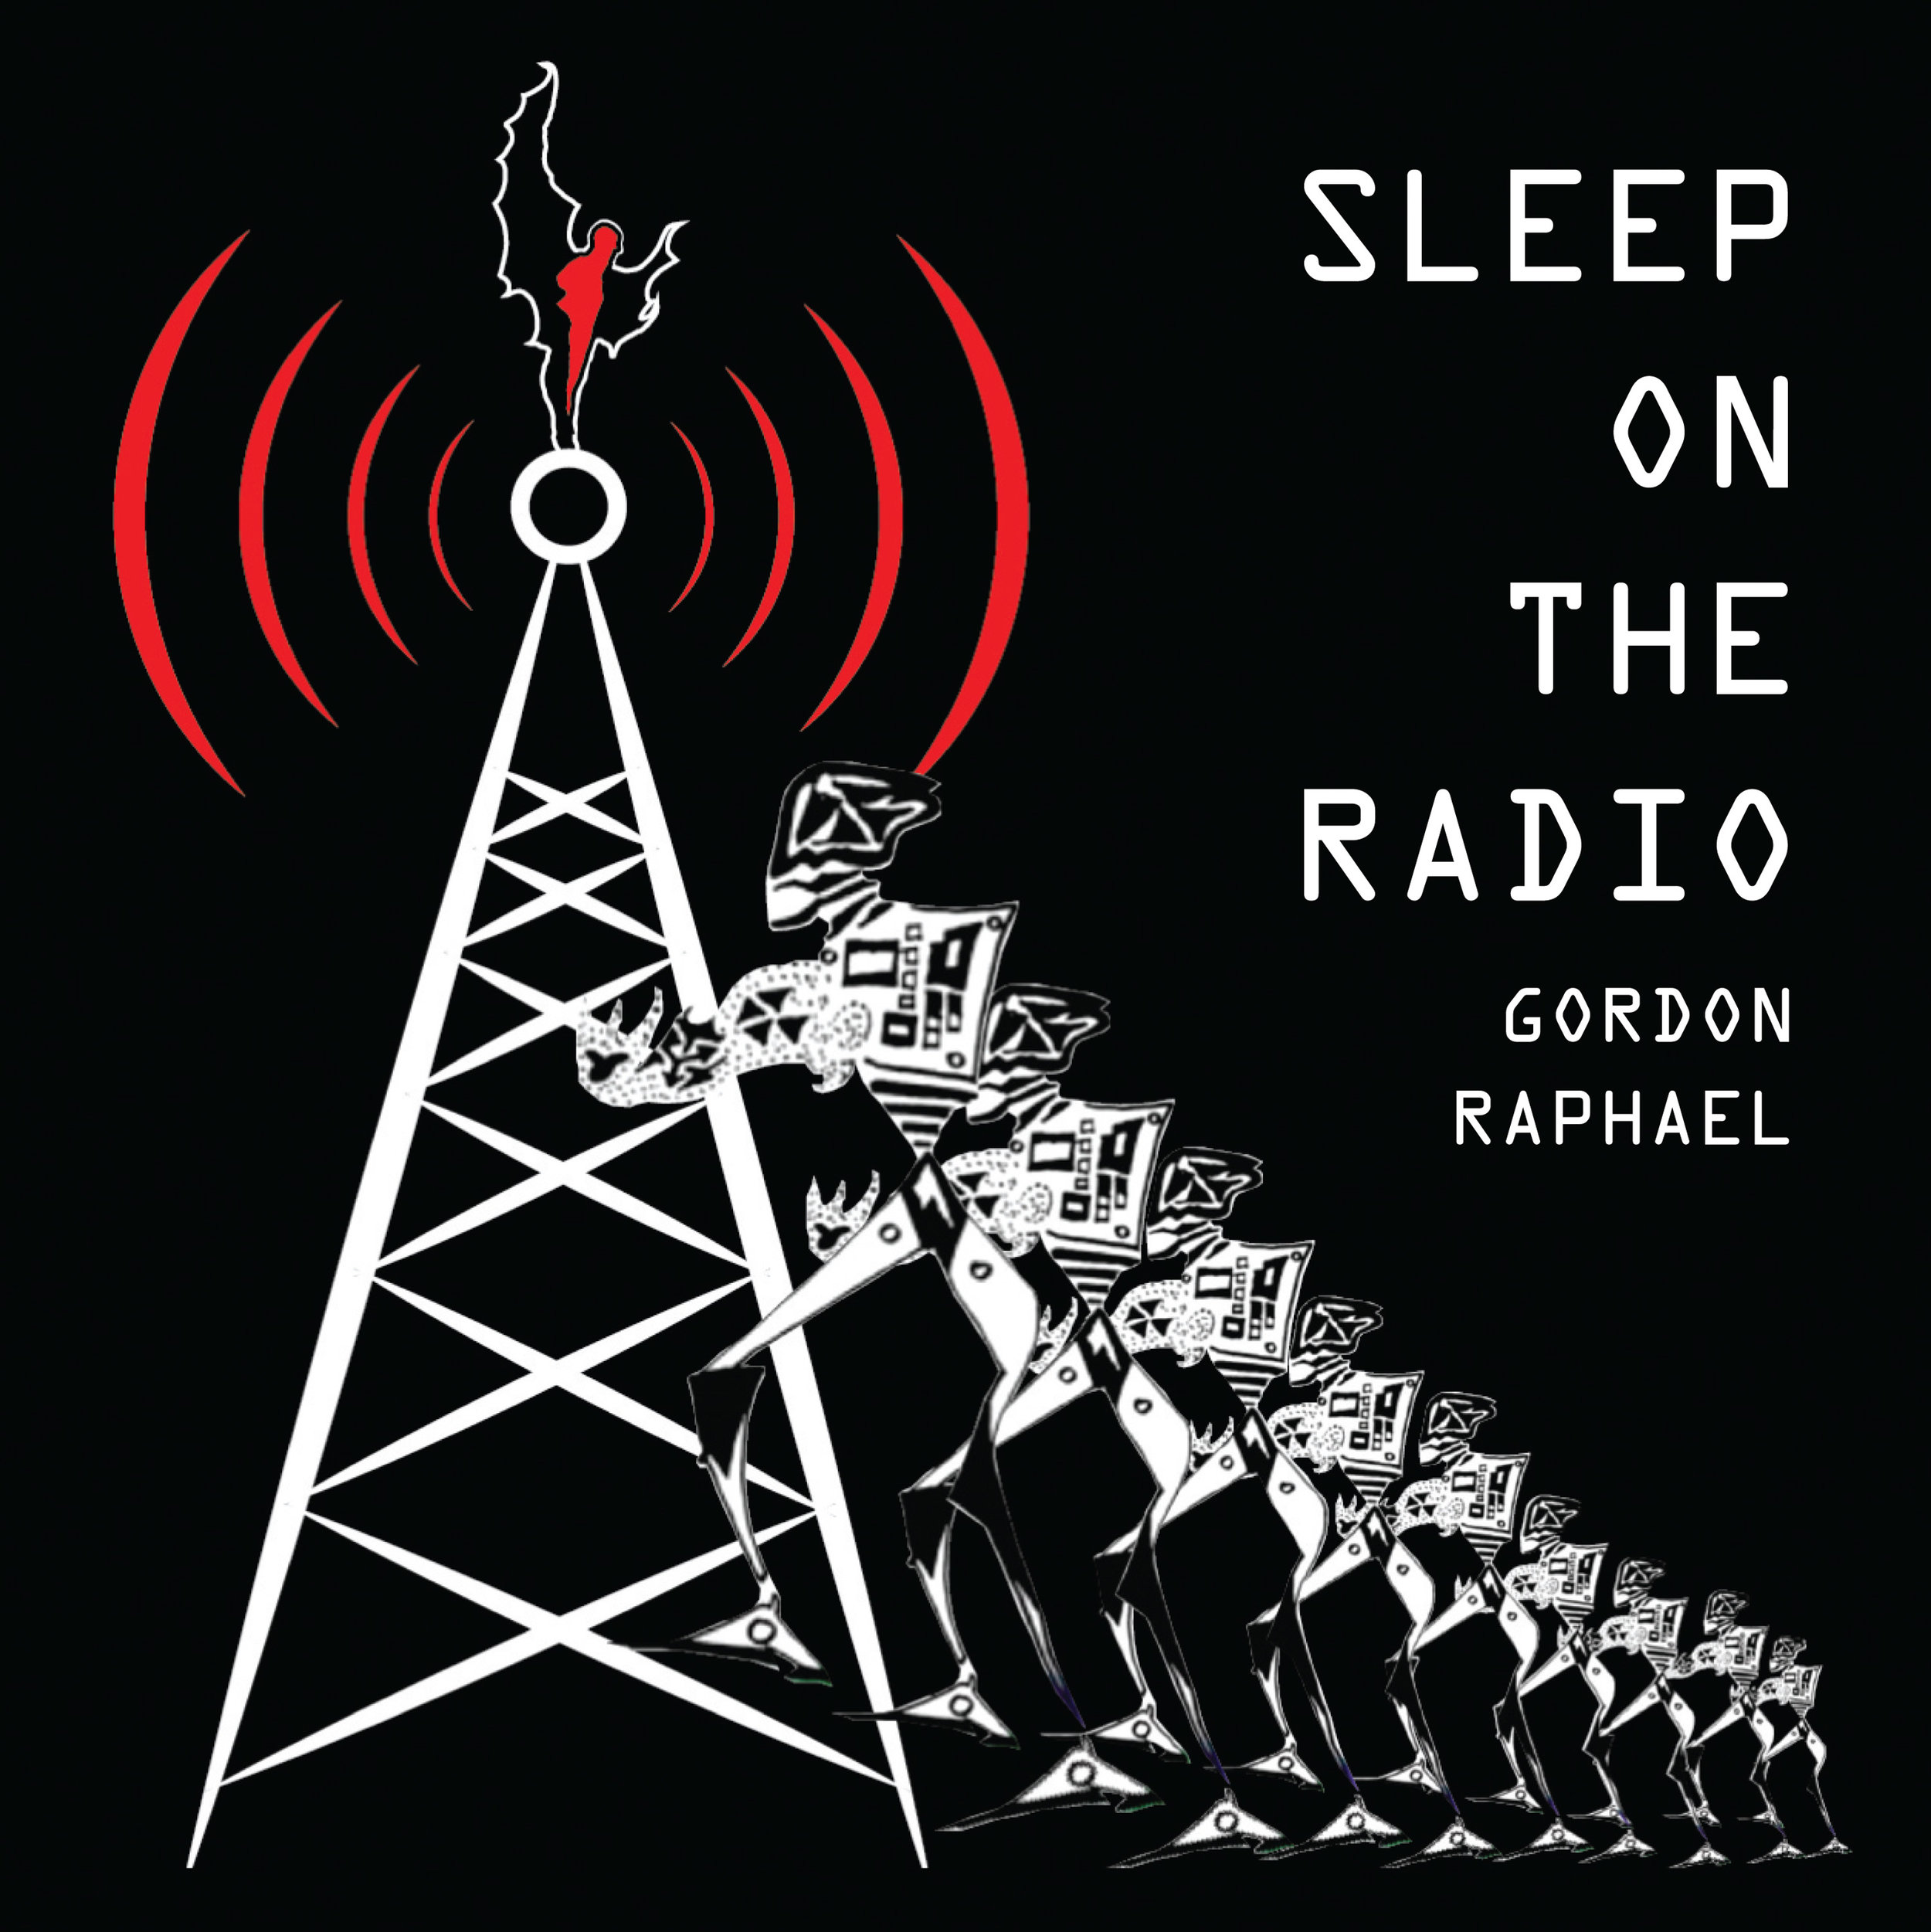 Gordon Raphael - Sleep on the Radio Cover Art.jpg